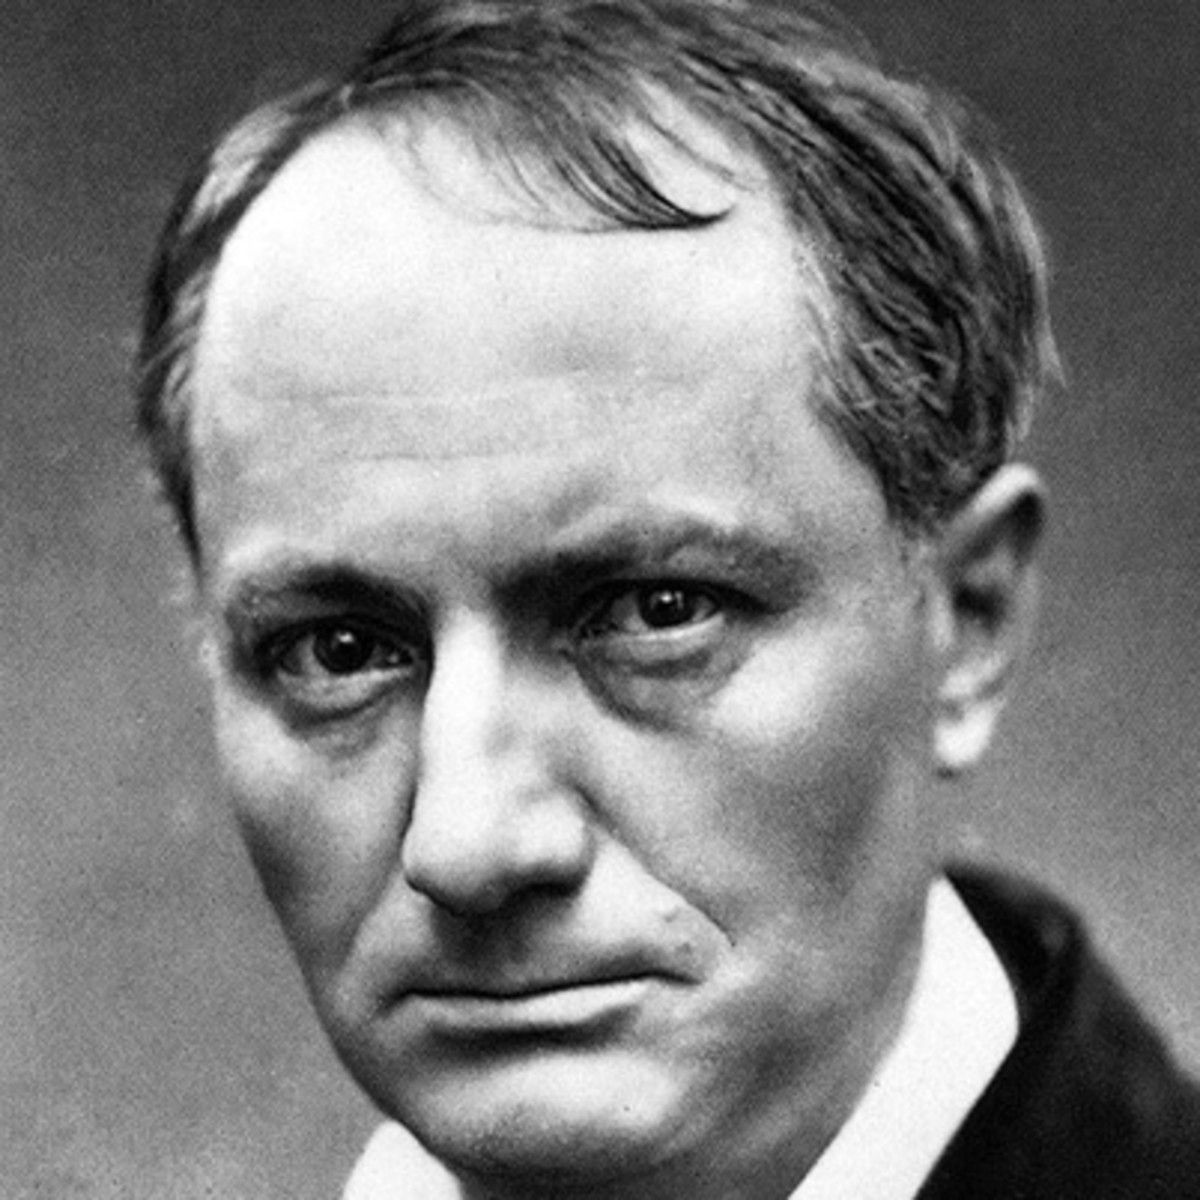 Charles Baudelaire - Author, Poet - Biography